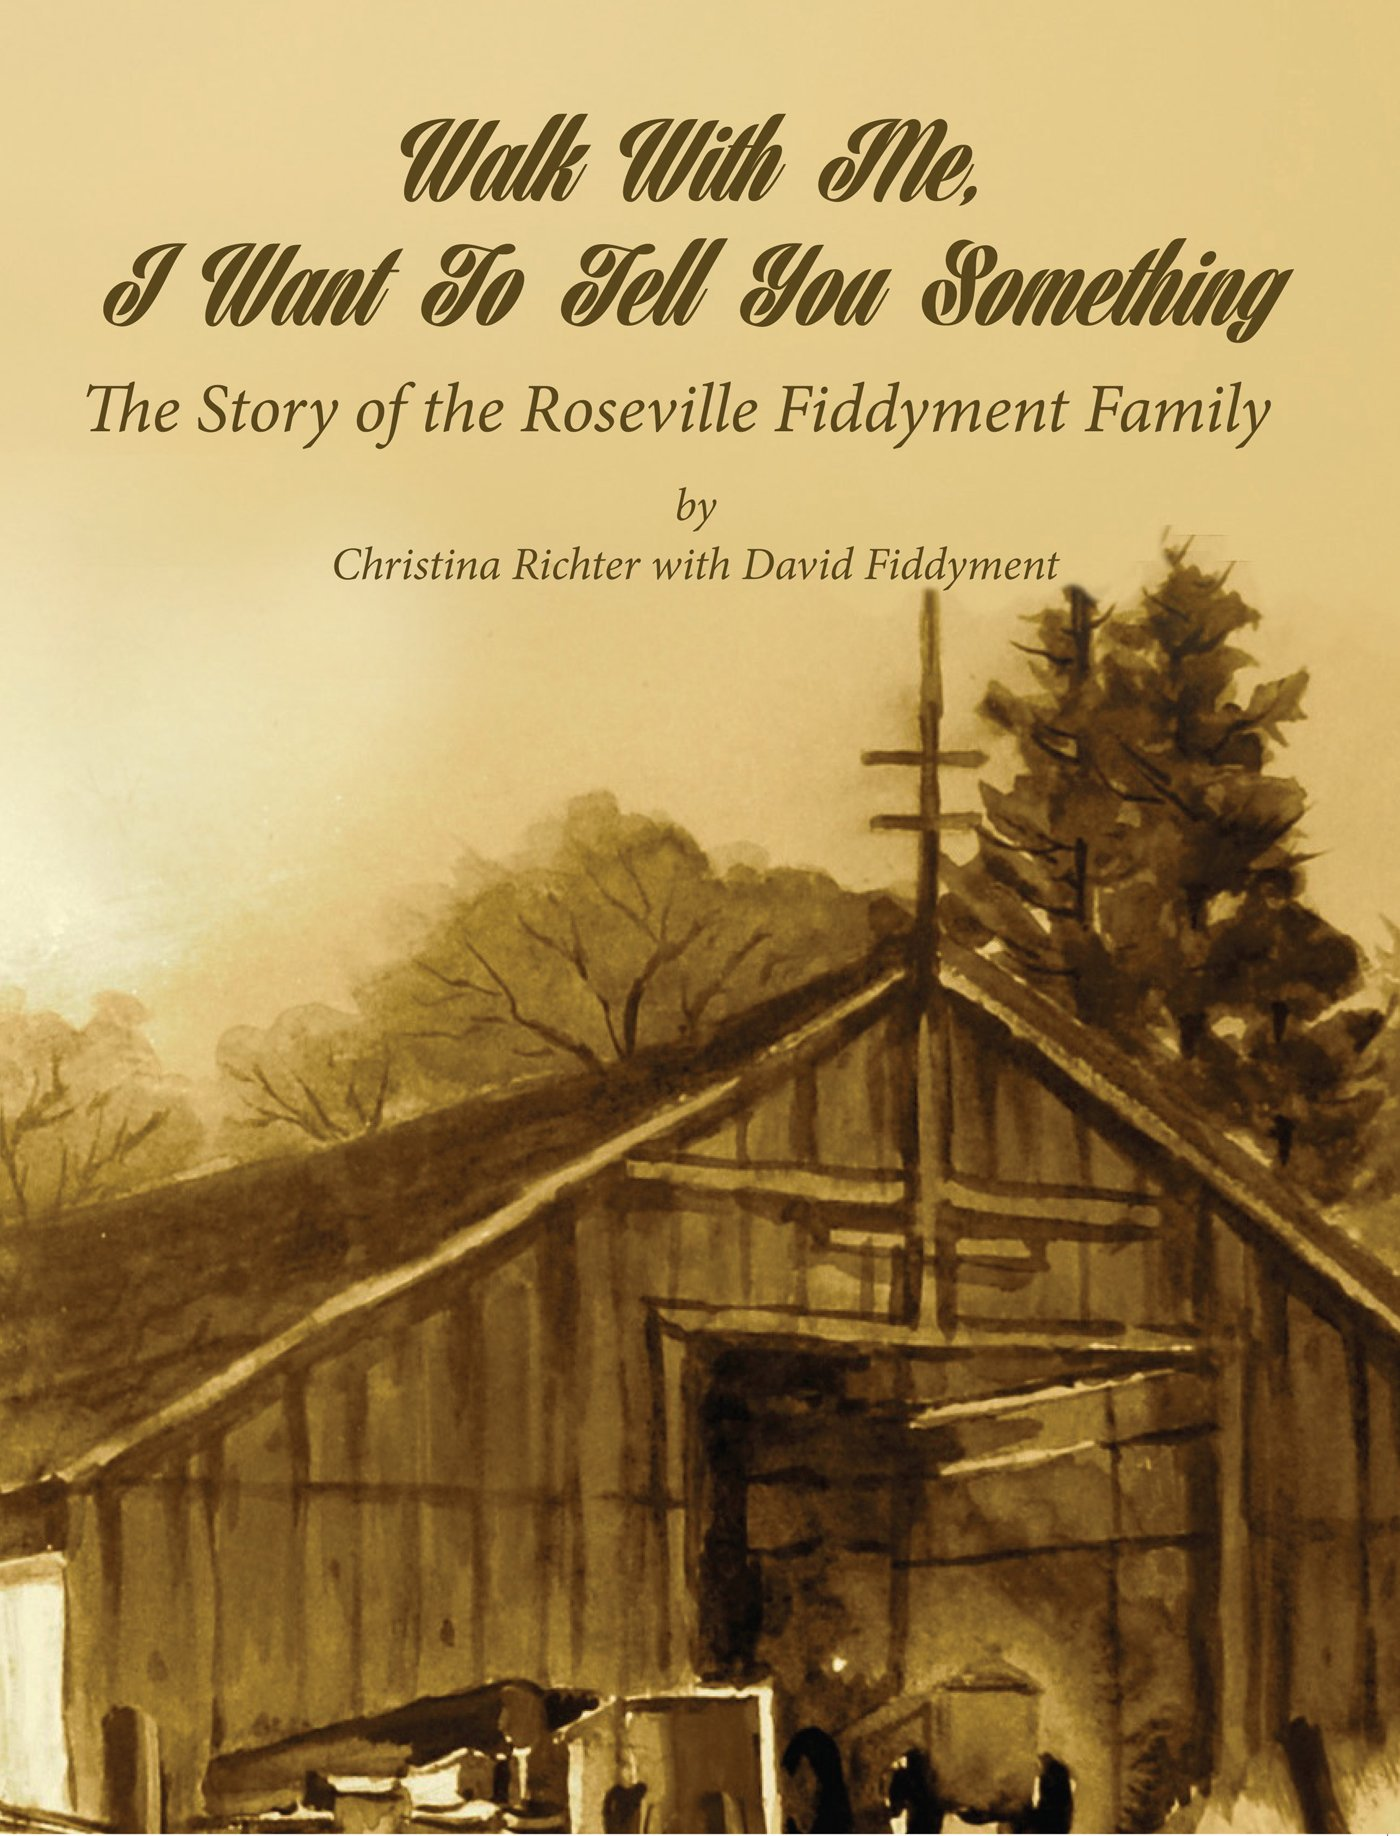 Walk with me, I want to tell you something - The Story of the Roseville Fiddyment Family pdf epub